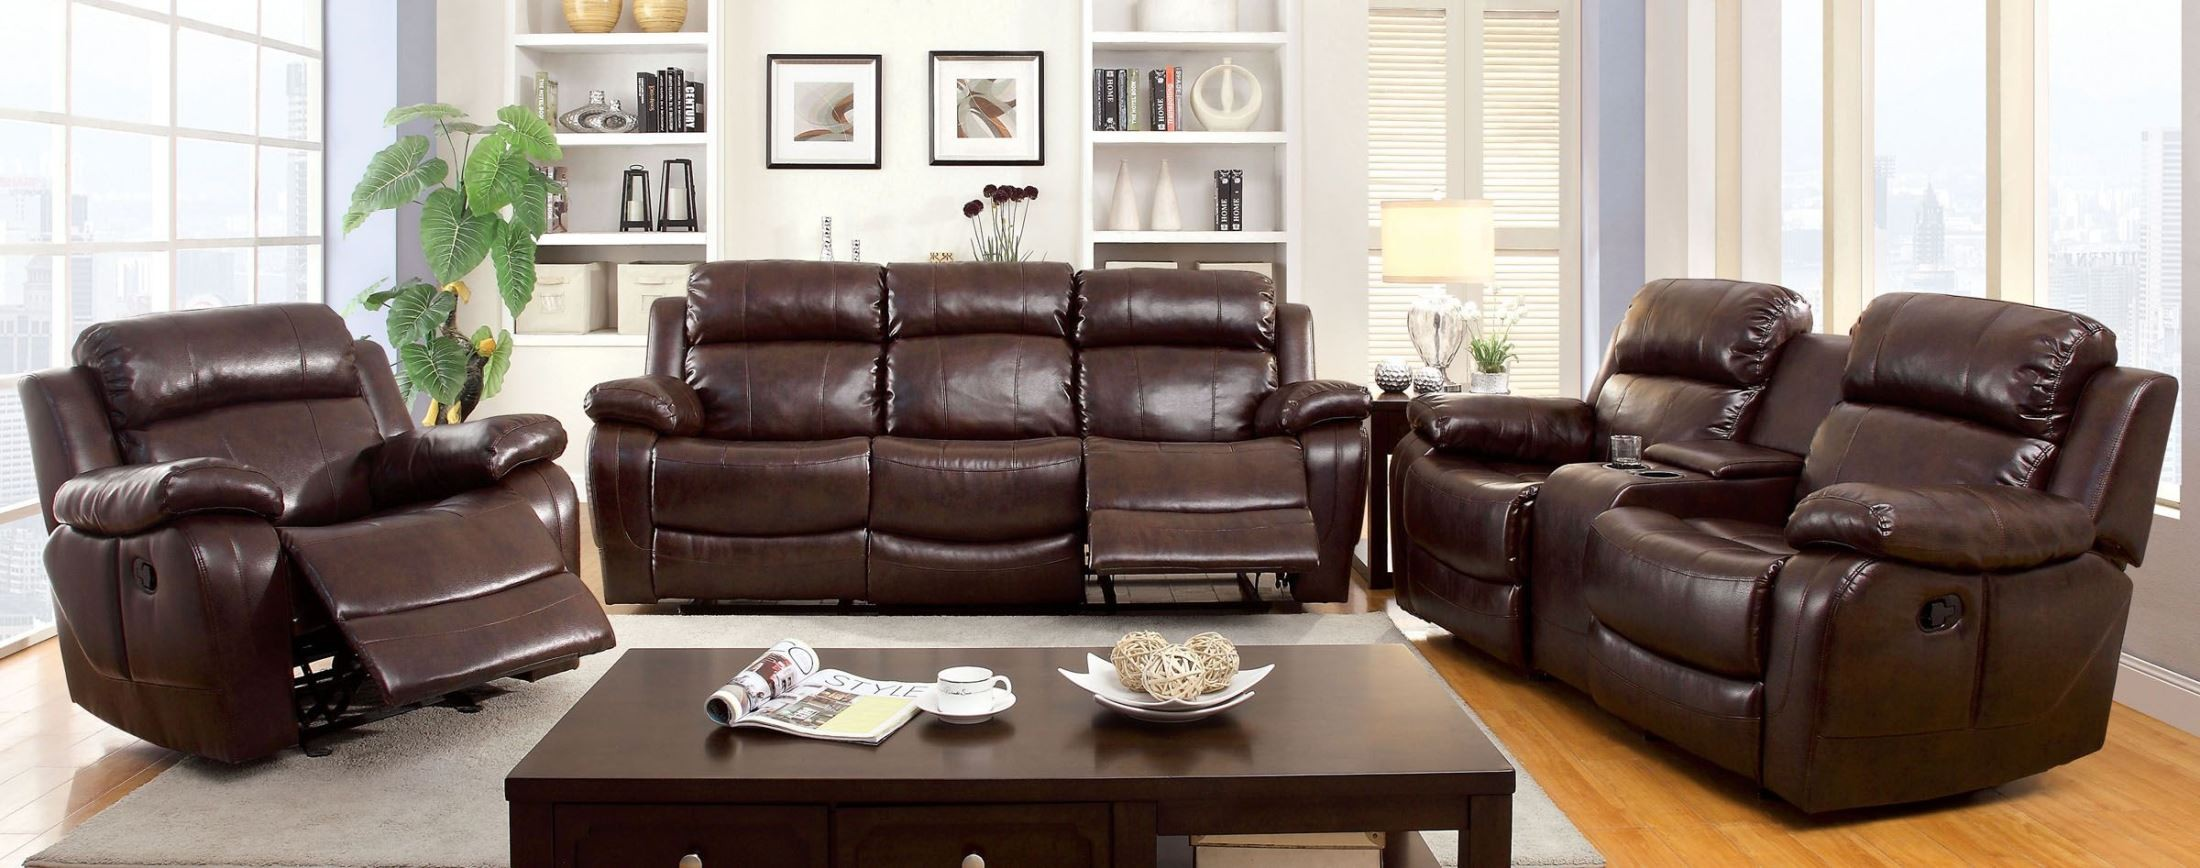 Hughes dark brown dropdown table reclining living room set for Dark brown living room set